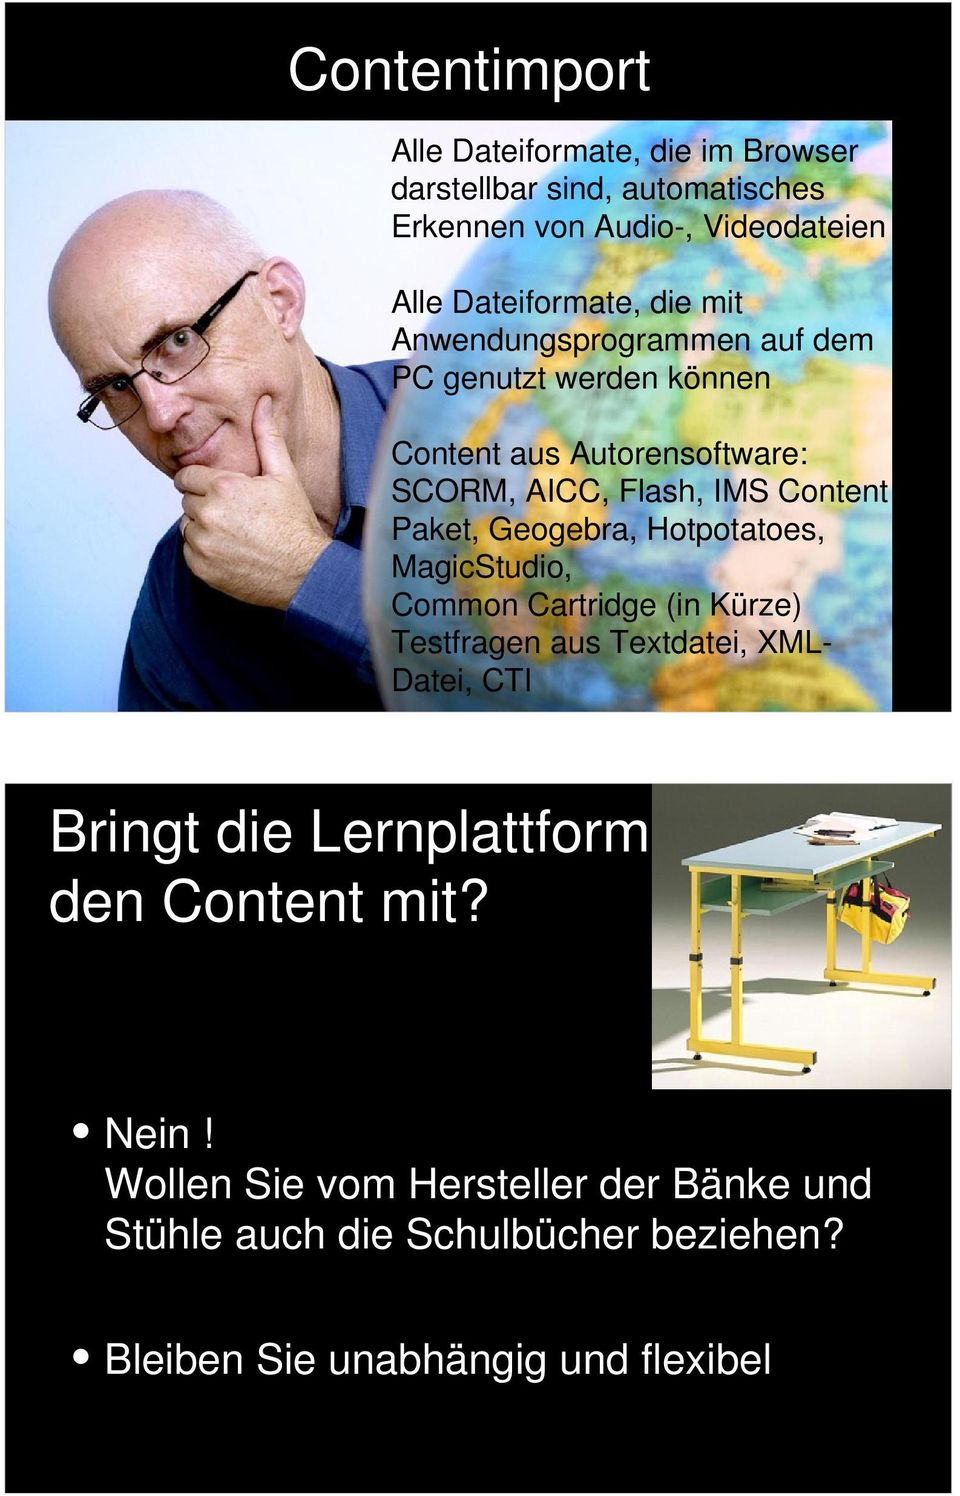 jpg Content aus Autorensoftware: SCORM, AICC, Flash, IMS Content Paket, Geogebra, Hotpotatoes, MagicStudio, Common Cartridge (in Kürze) Testfragen